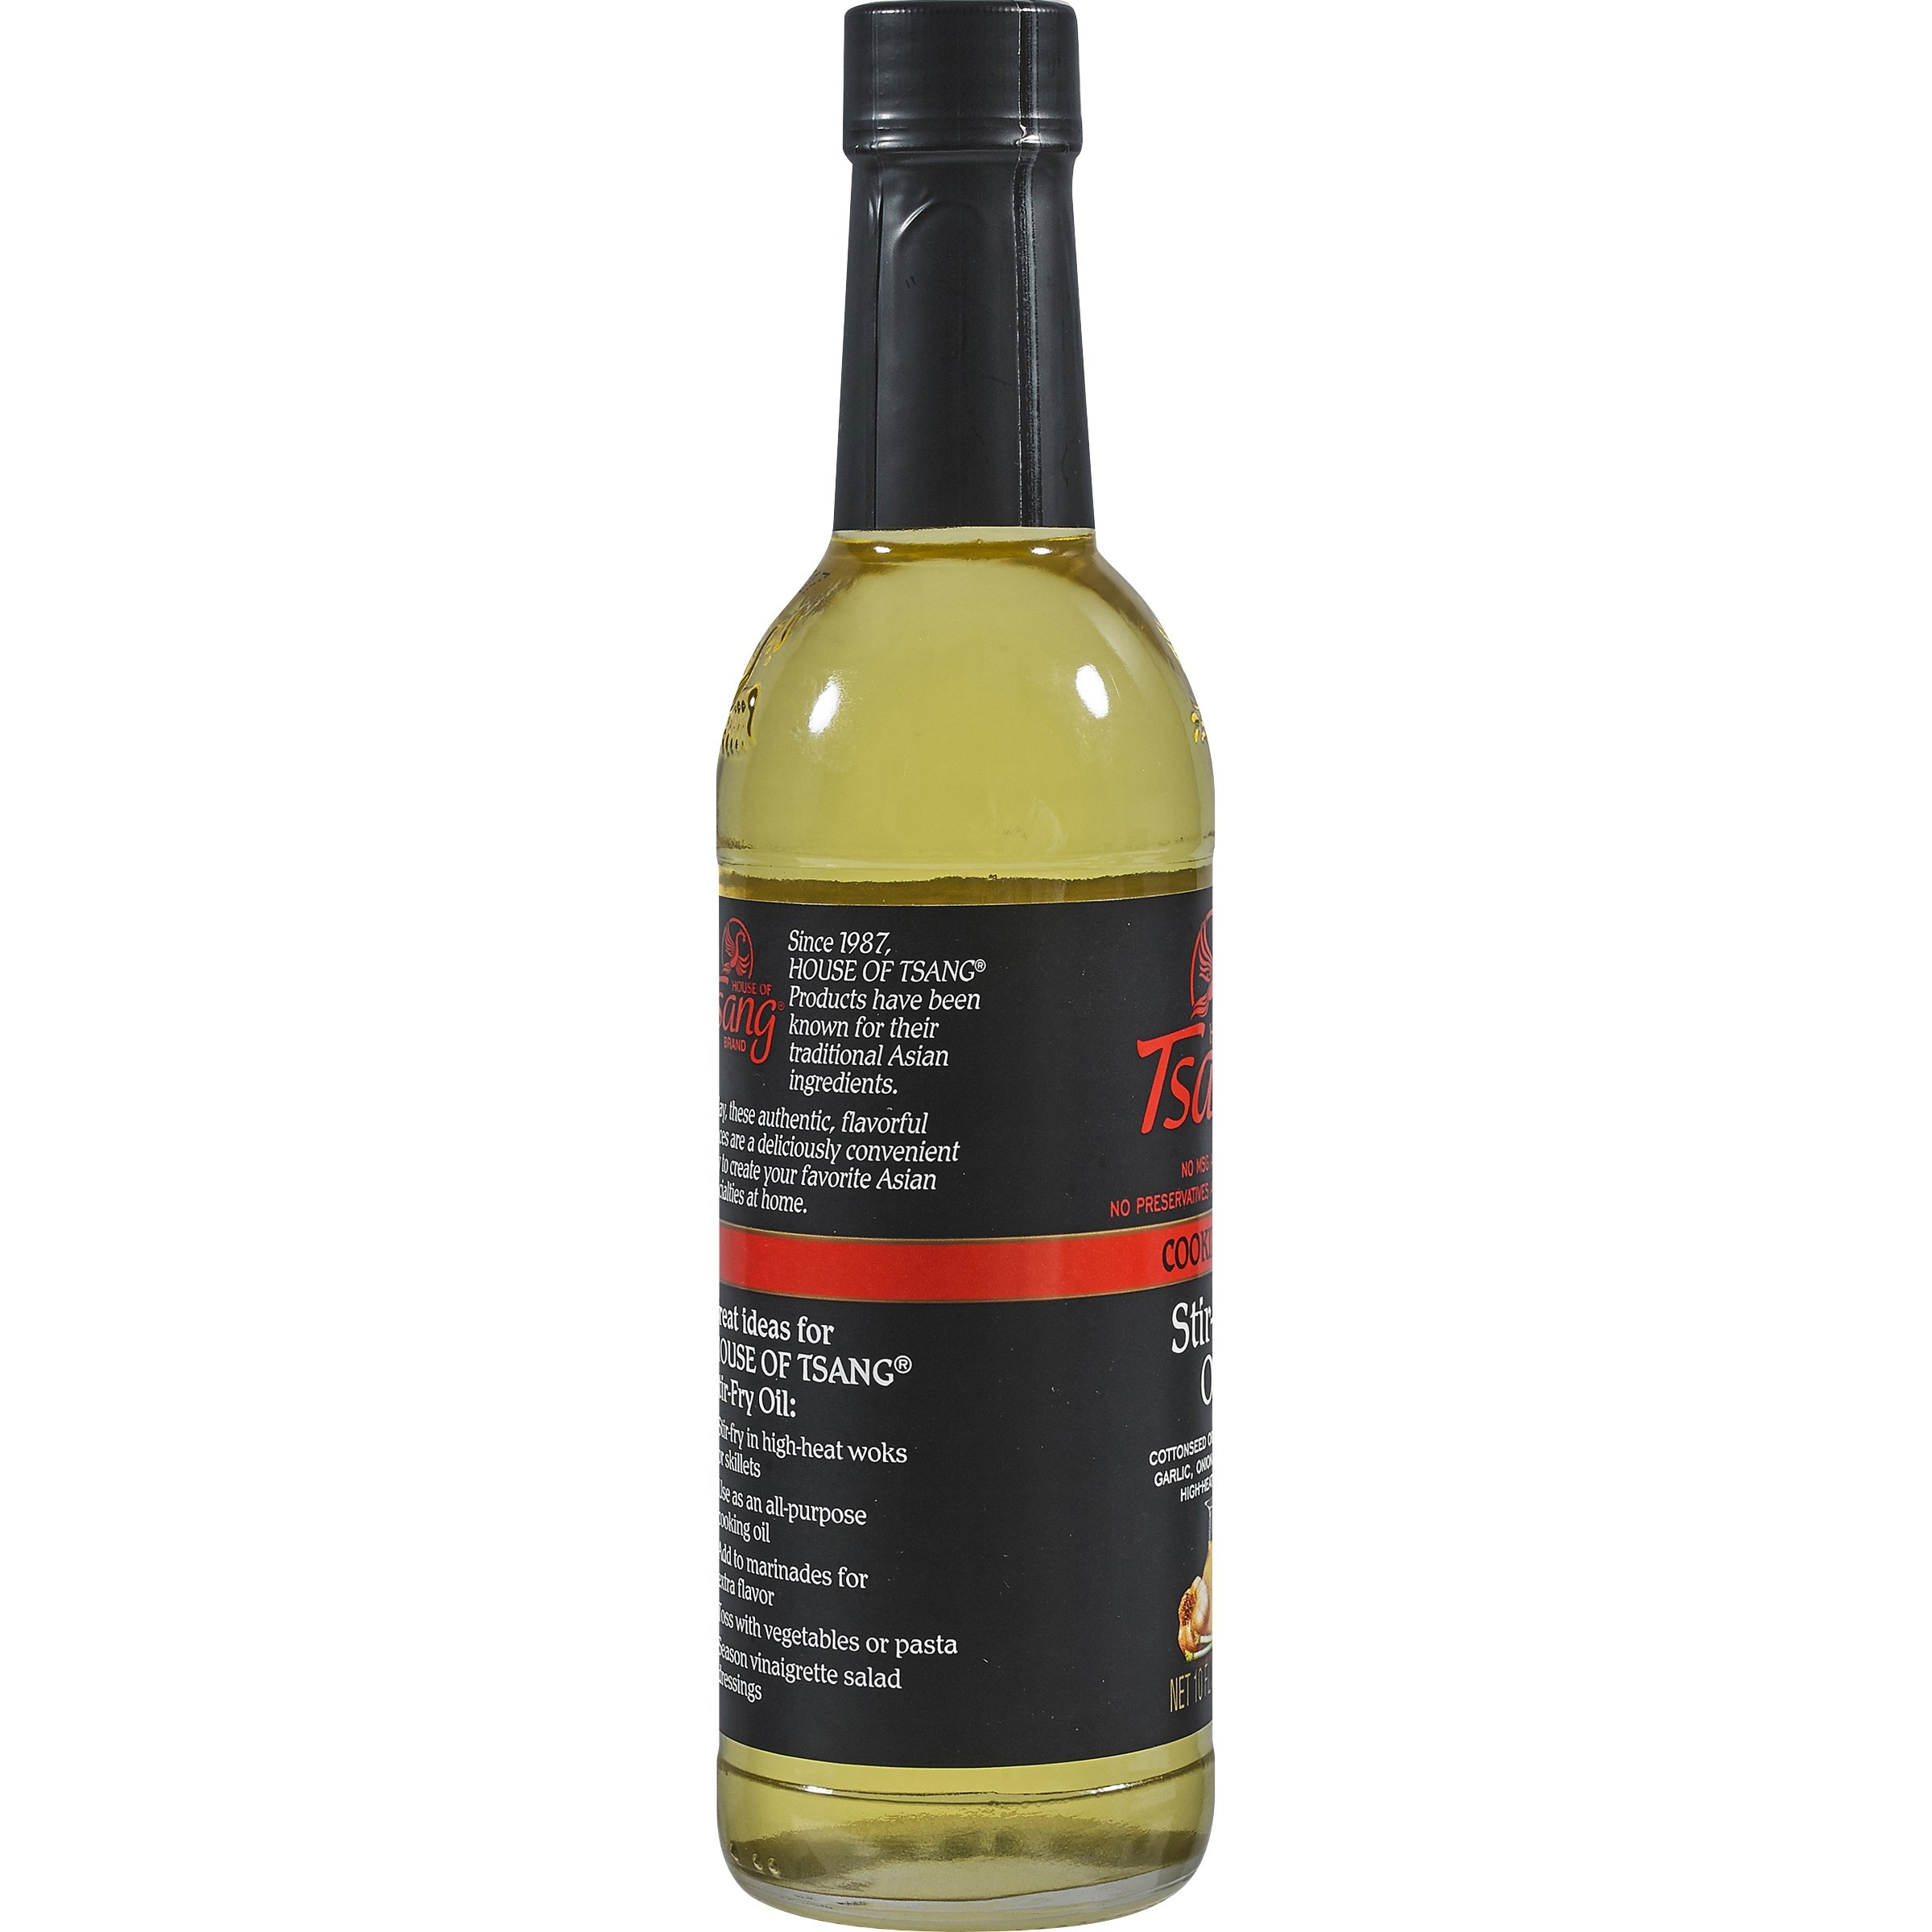 PACK OF 12 - House of Tsang Stir-Fry Cooking Oil, 10 fl oz by _House of Tsang (Image #3)